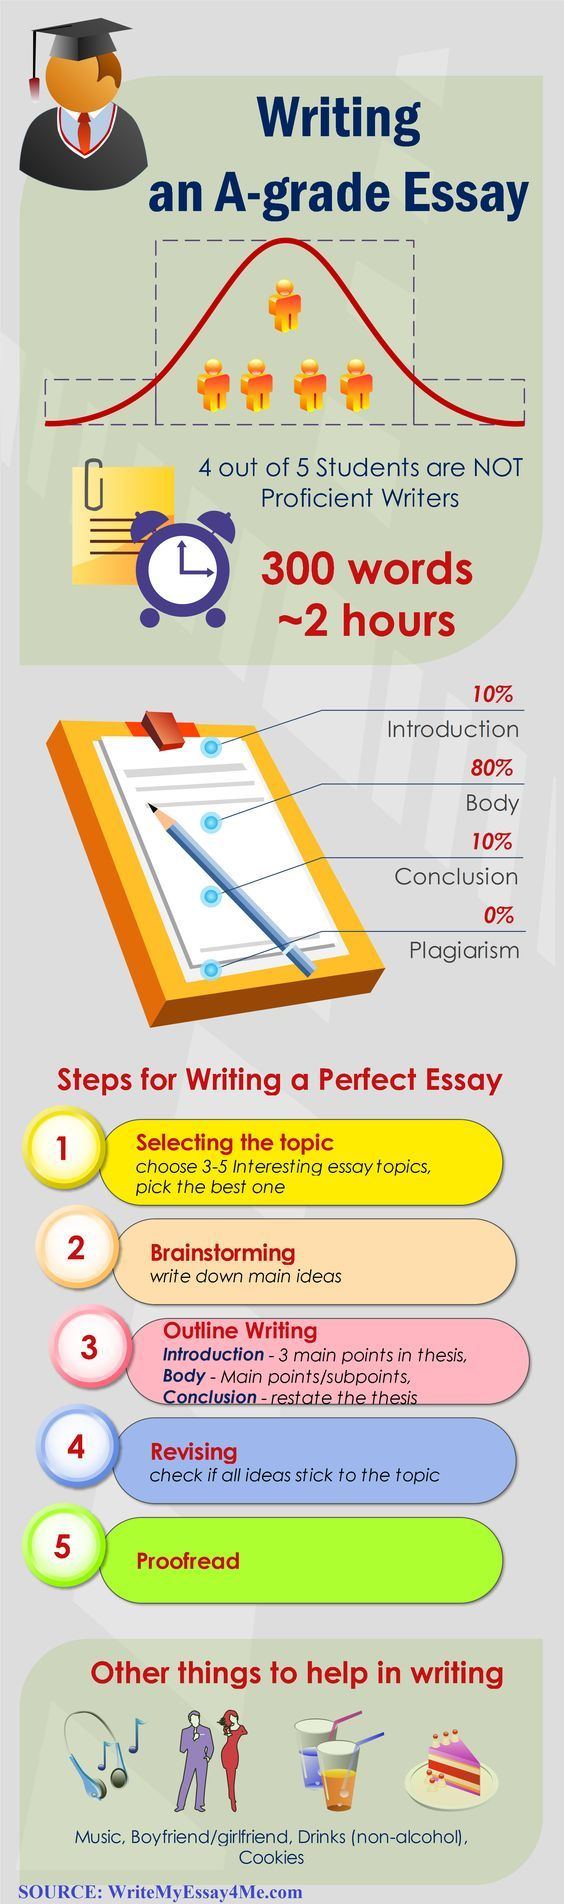 argumentative essay topics for college students easy easy narrative essay topics video example and personal narrative college or university argumentative essays argumentative essay